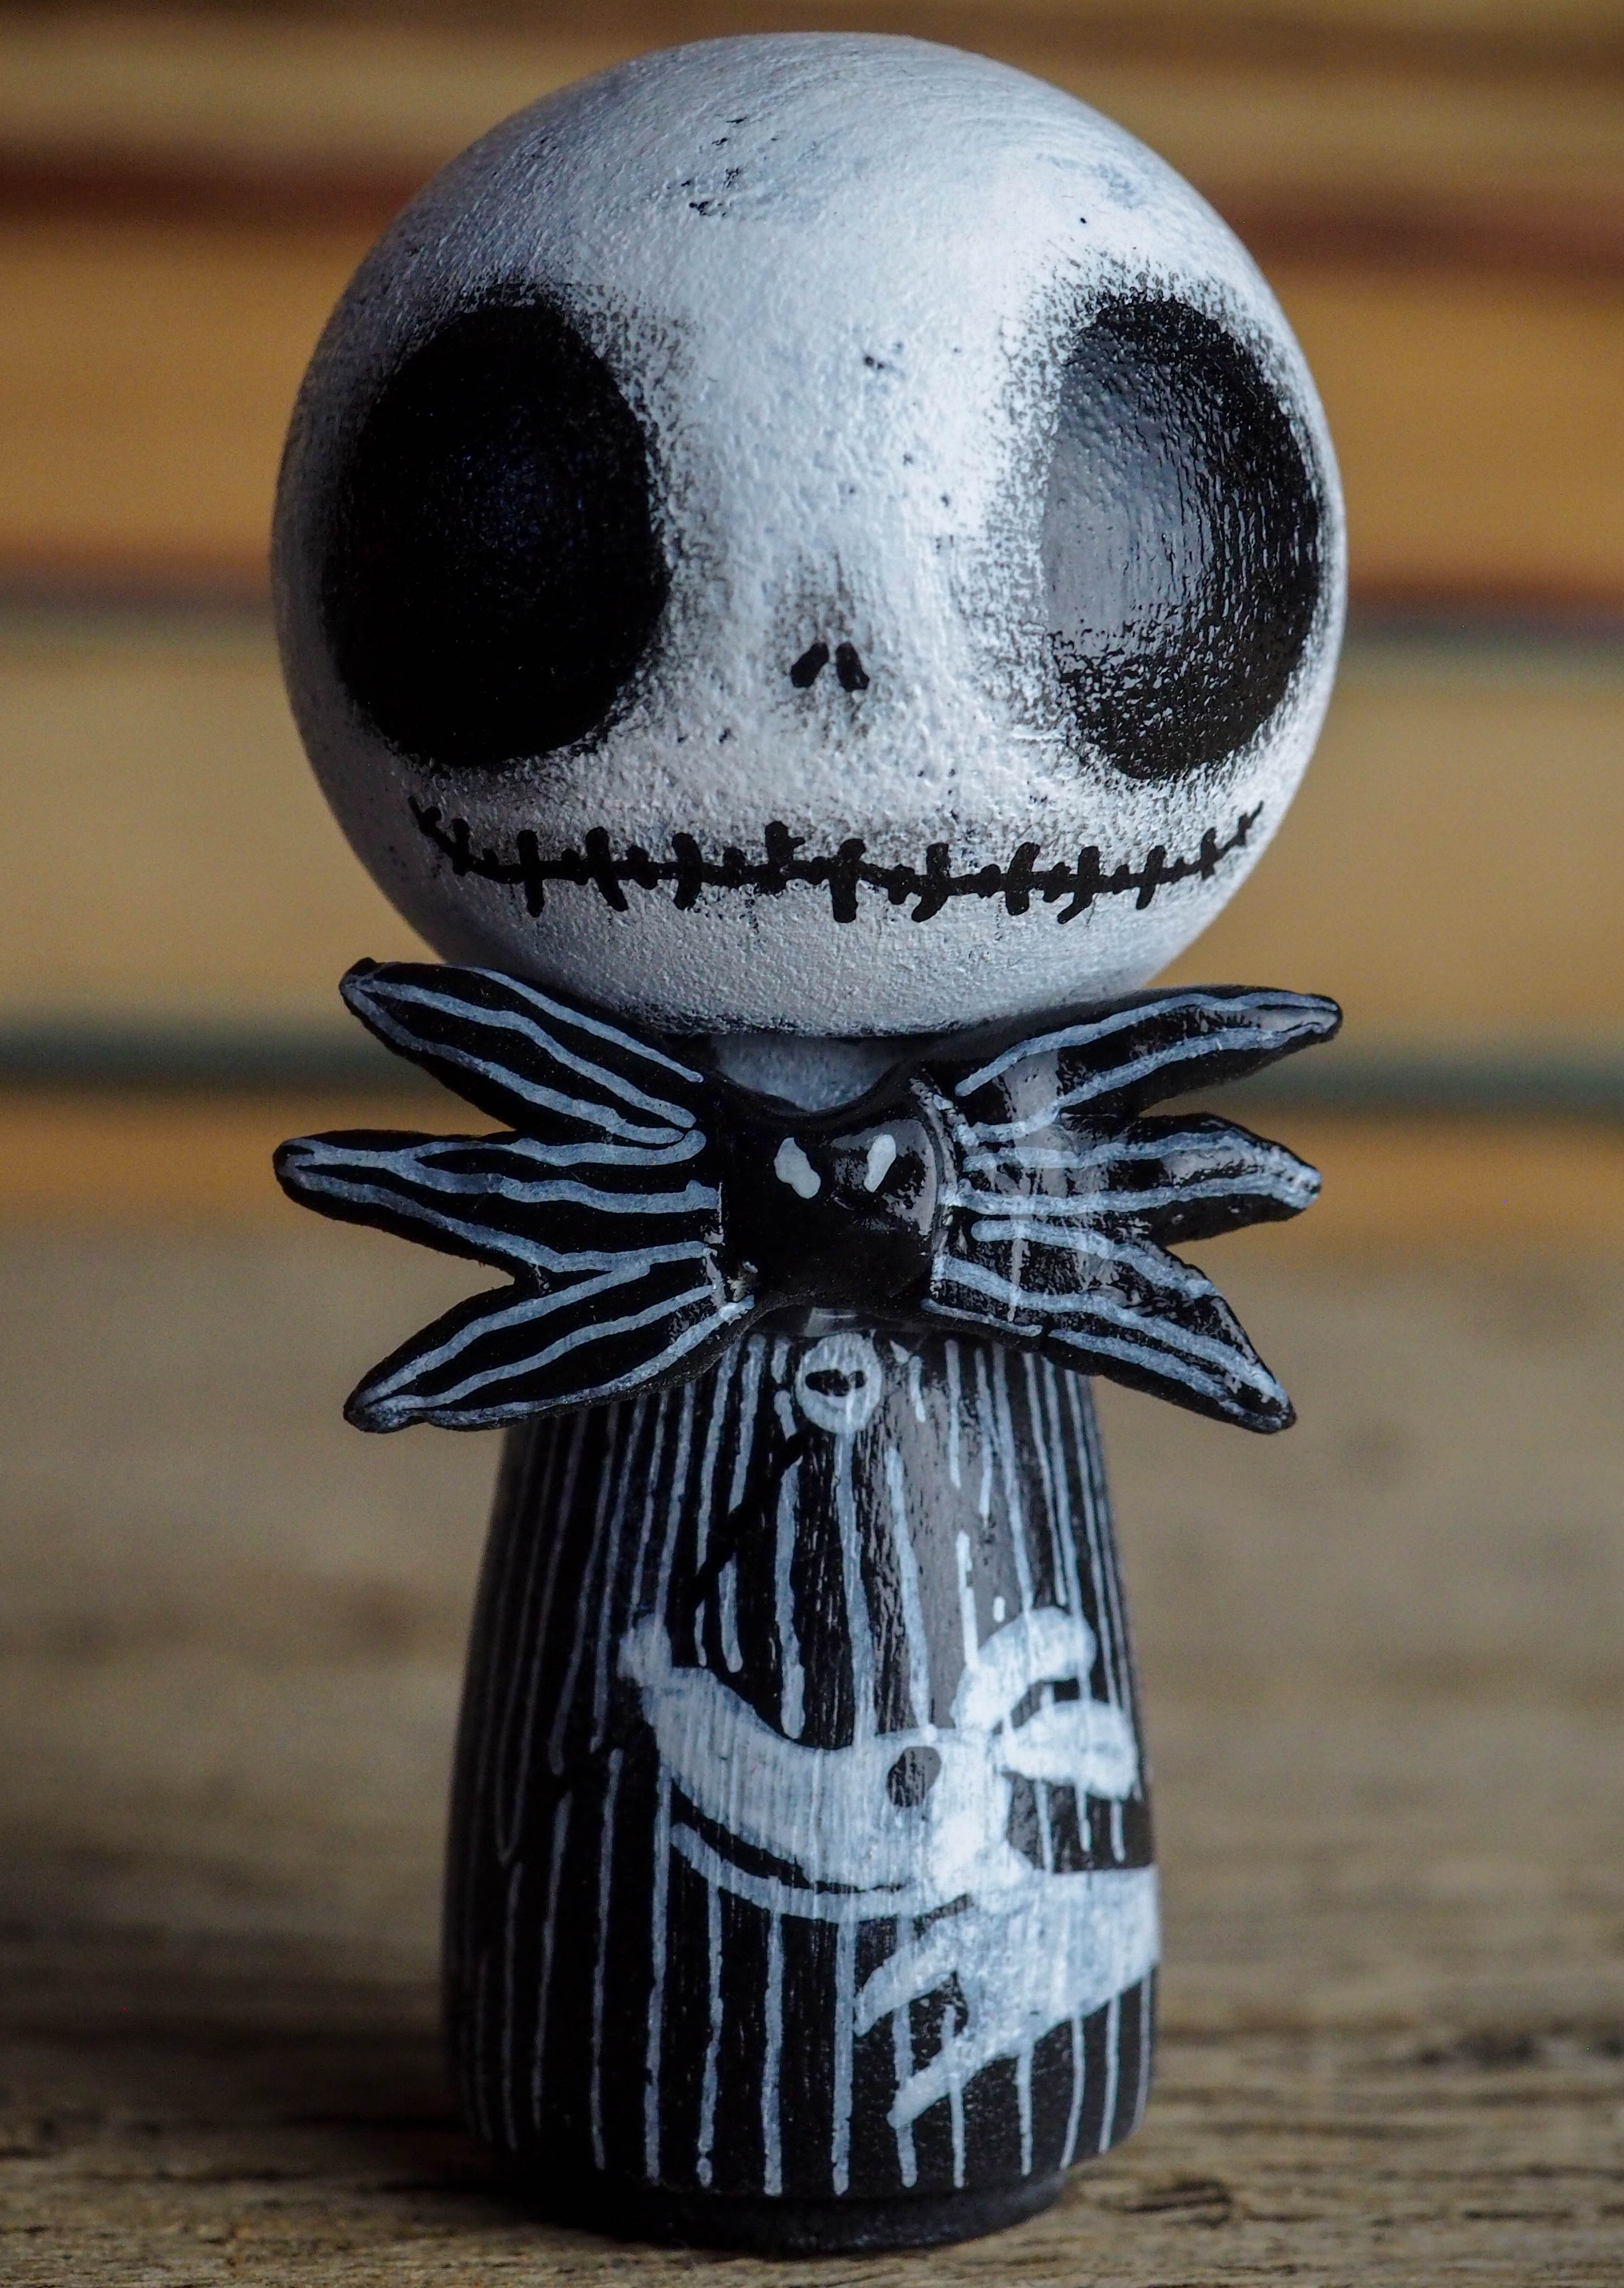 JACK THE PUMPKIN KING AND SALLY - Halloween and the nightmare before Christmas mini fig. A Kokeshi wood peg doll handmade by Danita, Miniature Dolls by Danita Art